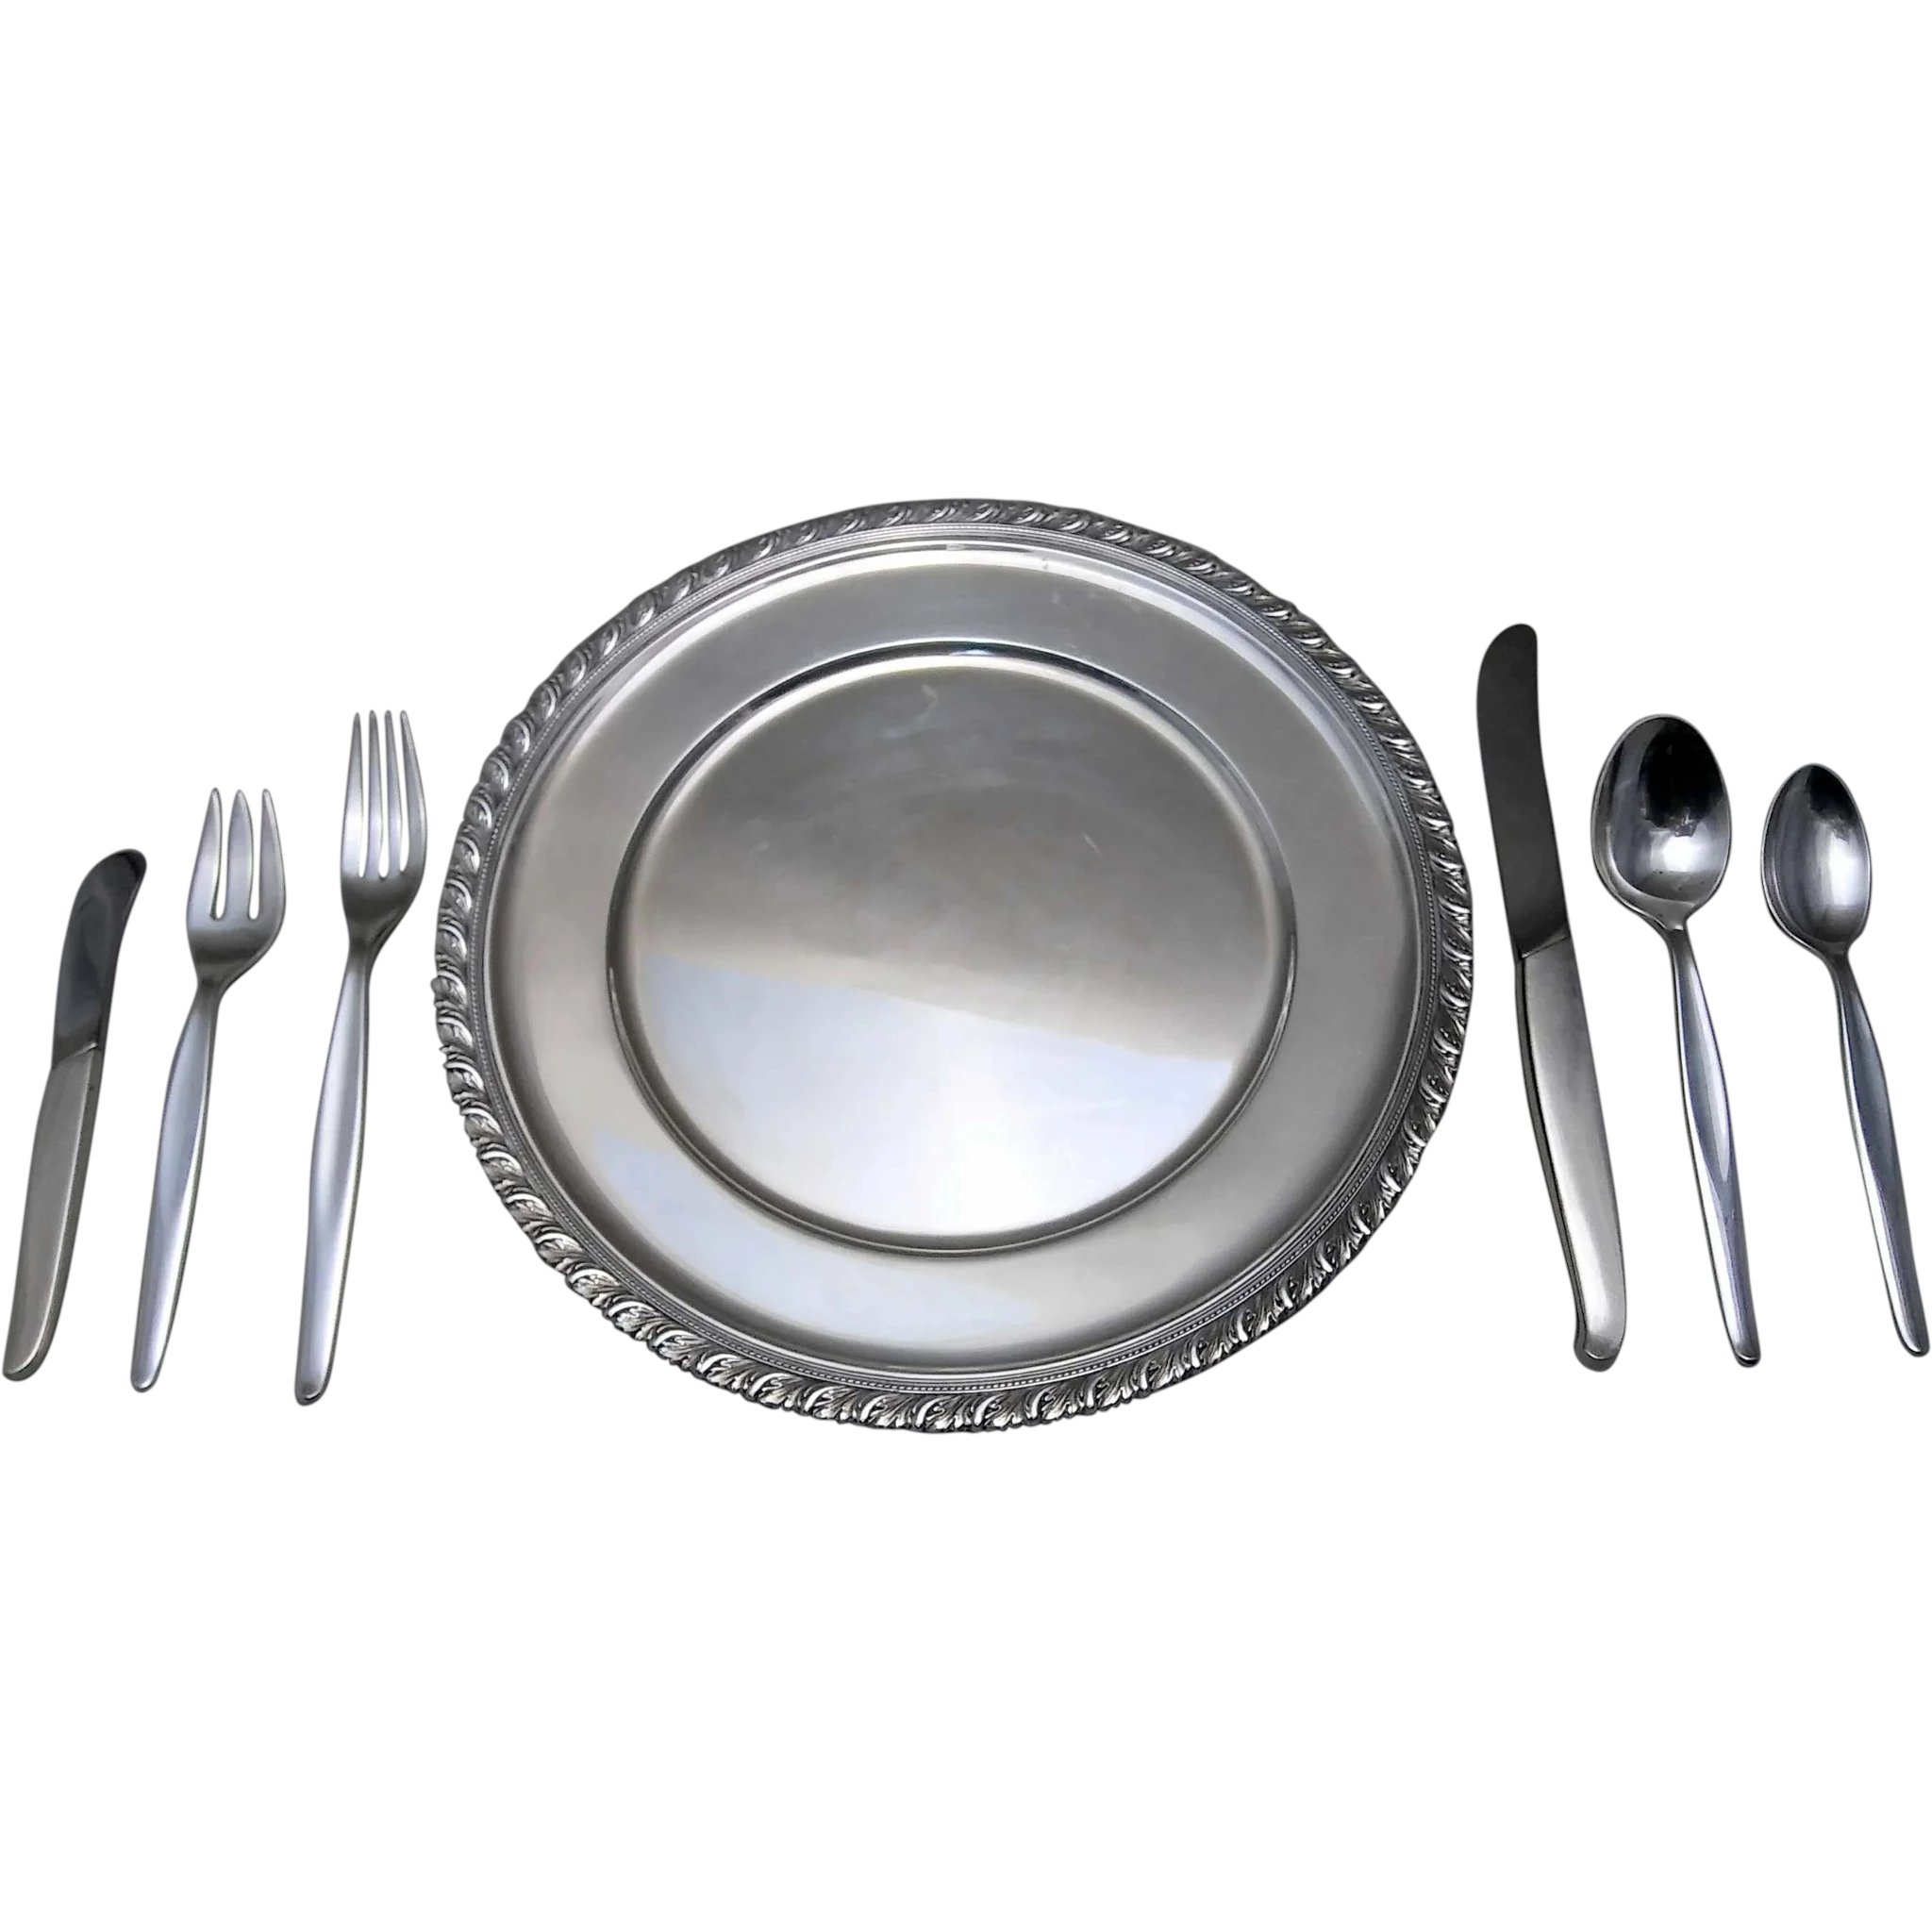 Sterling Silver Flatware Towle Contour Salad Fork